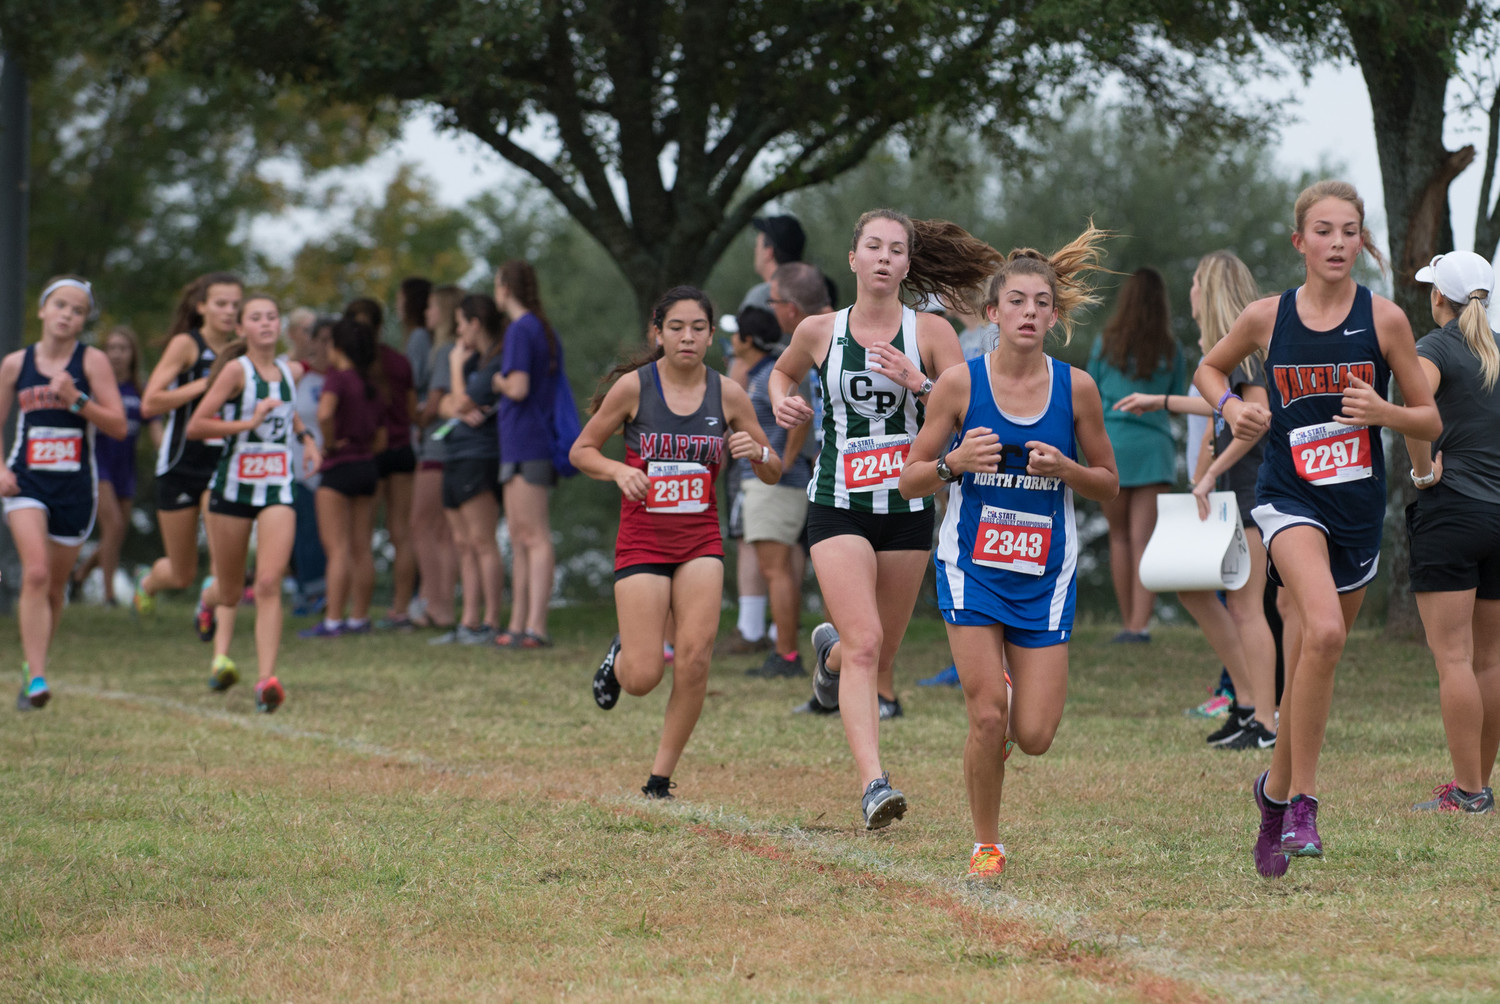 Kaitlyn Childress of Cedar Park High School runs in the UIL Cross Country State Meet at Old Settlers Park in Round Rock, Texas, on Saturday, Nov. 4, 2017. A freshman, Childress was the top finisher among all Leander ISD girls in the Class 5A race, with a time of 19:06.44.